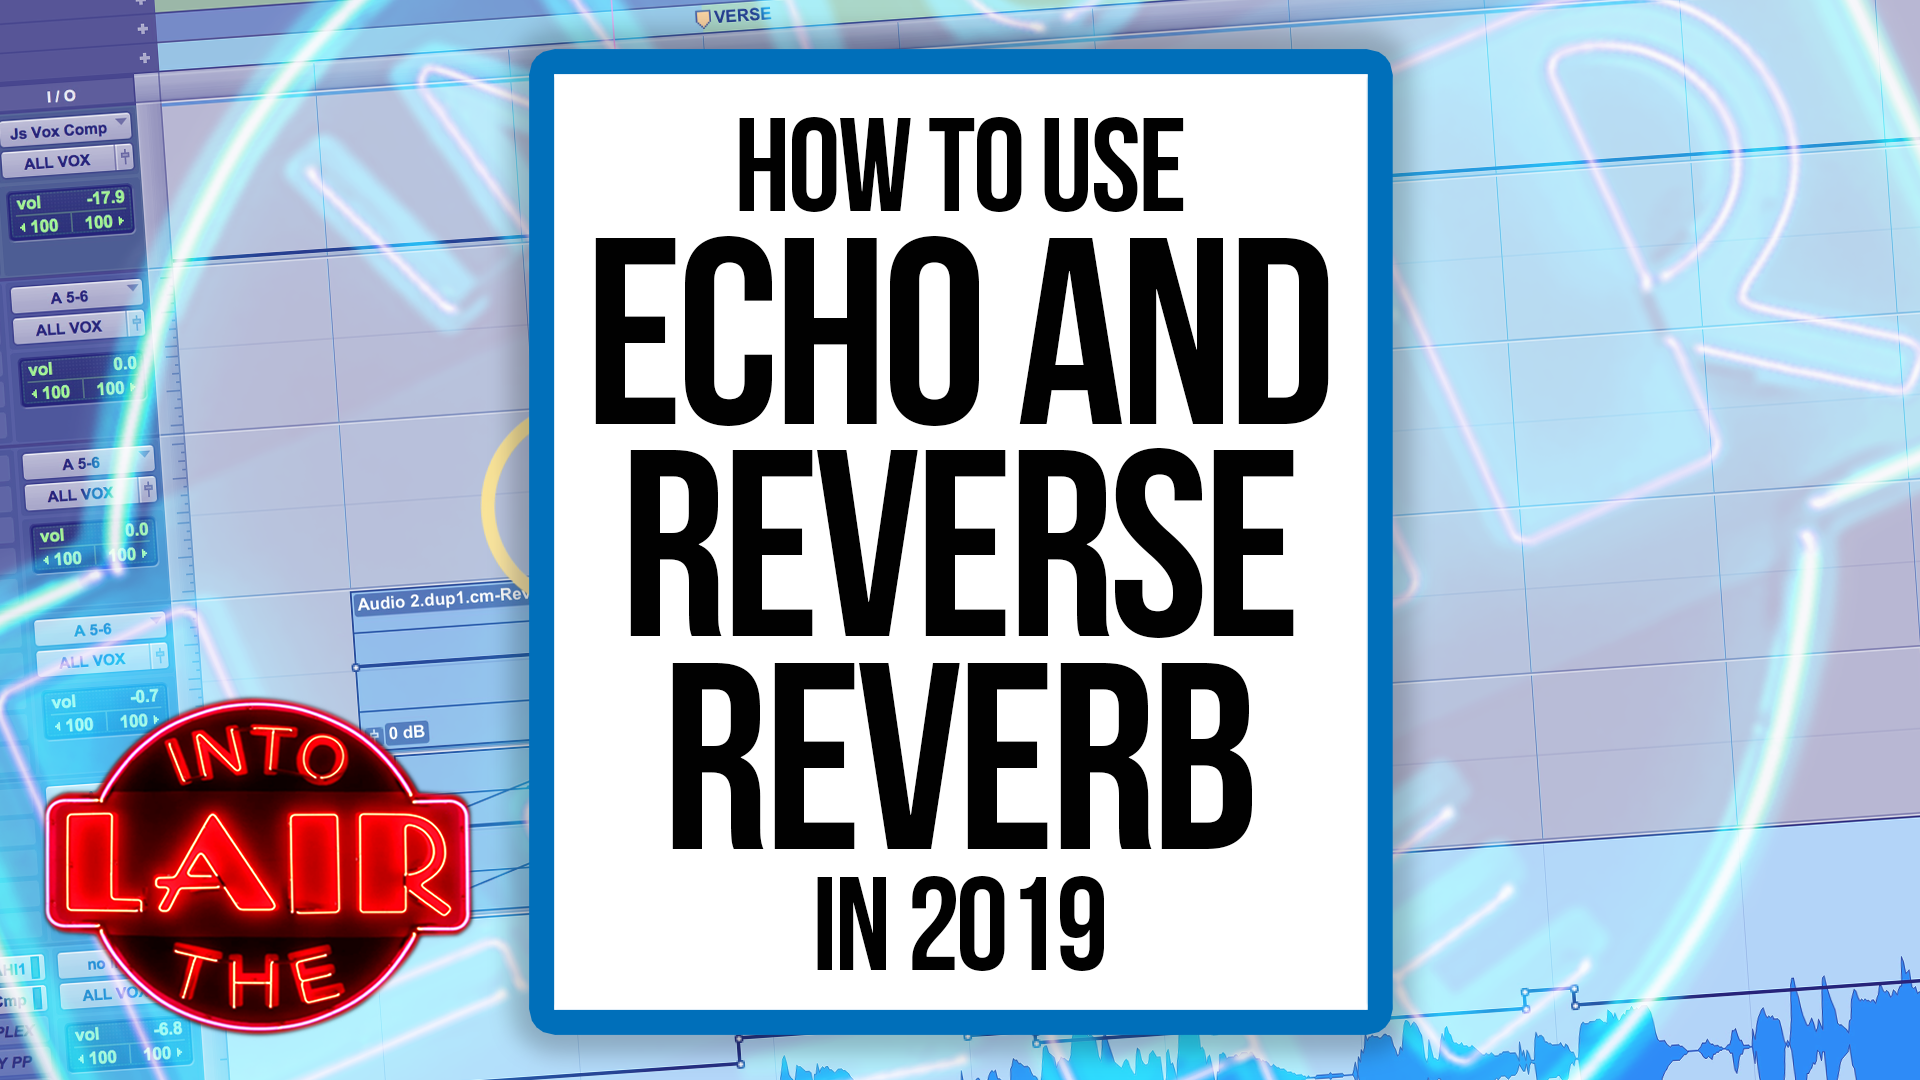 How To Use Echo & Reverse Reverb In 2019